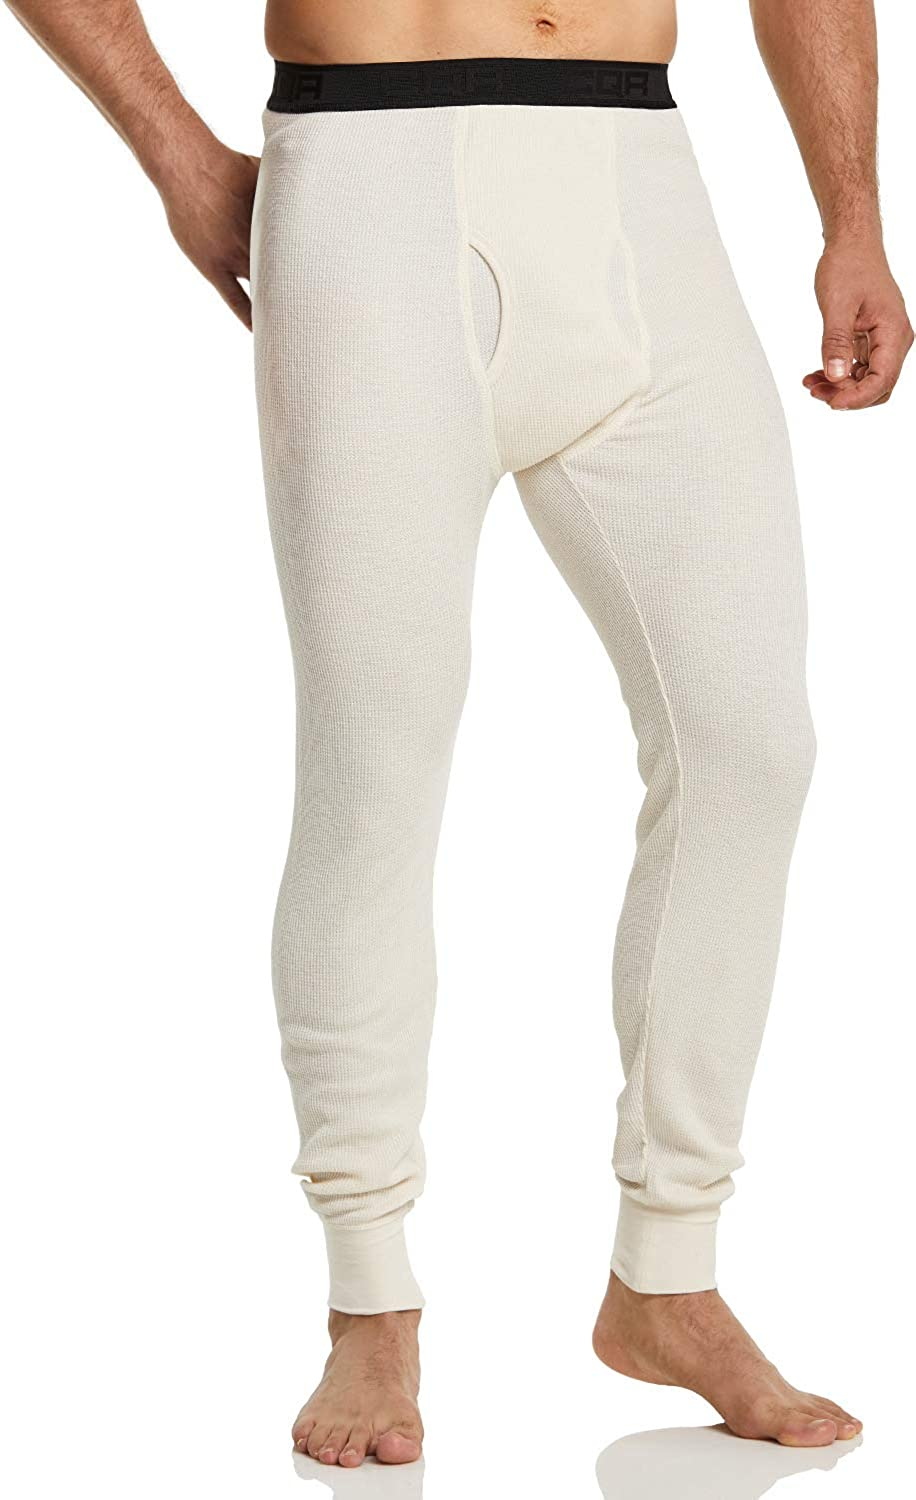 CQR 1 or 2 Pack Men's Thermal Underwear Pants, Midweight Waffle Knit Long Johns, Winter Cold Weather Thermal Bottoms with Fly